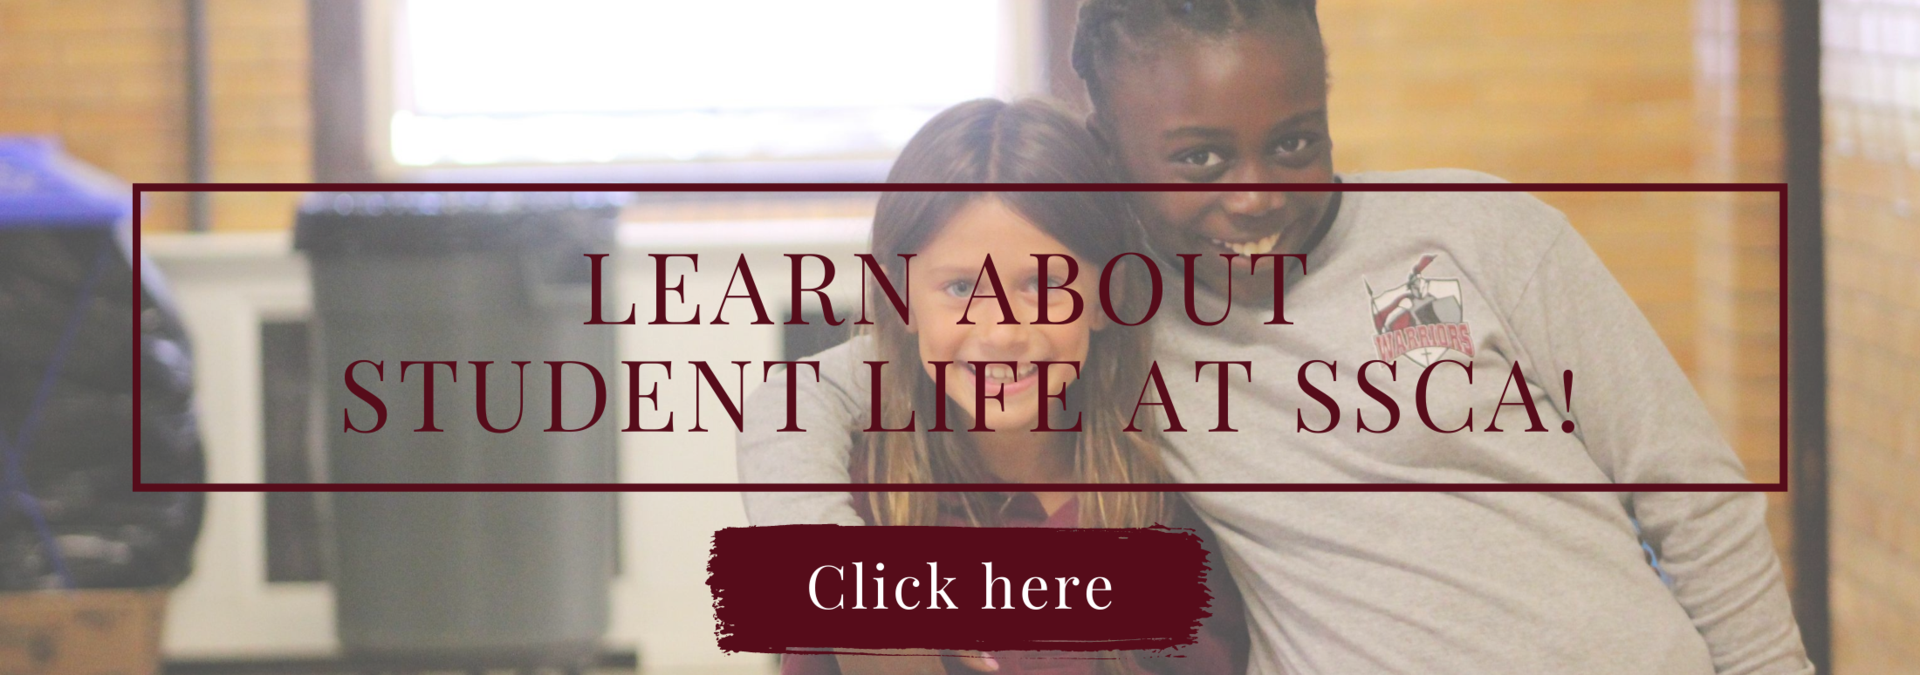 Learn about student life at SSCA!